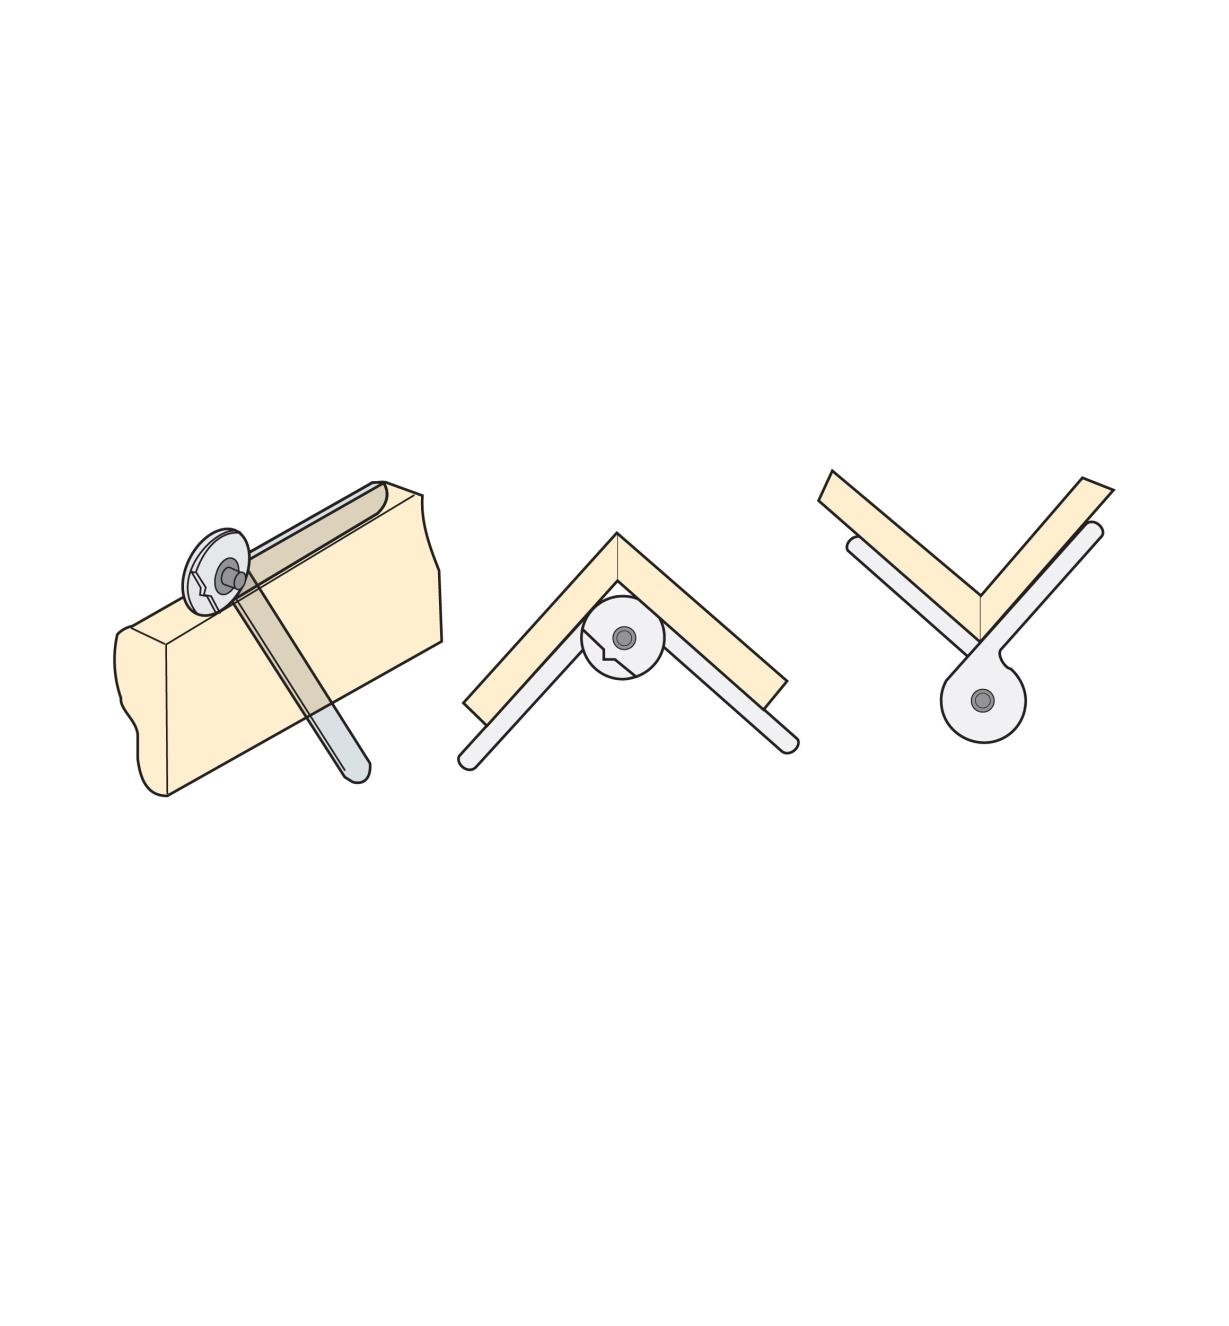 Illustrated examples of using the Combination Gauge to measure inside and outside angles and transfer an angle